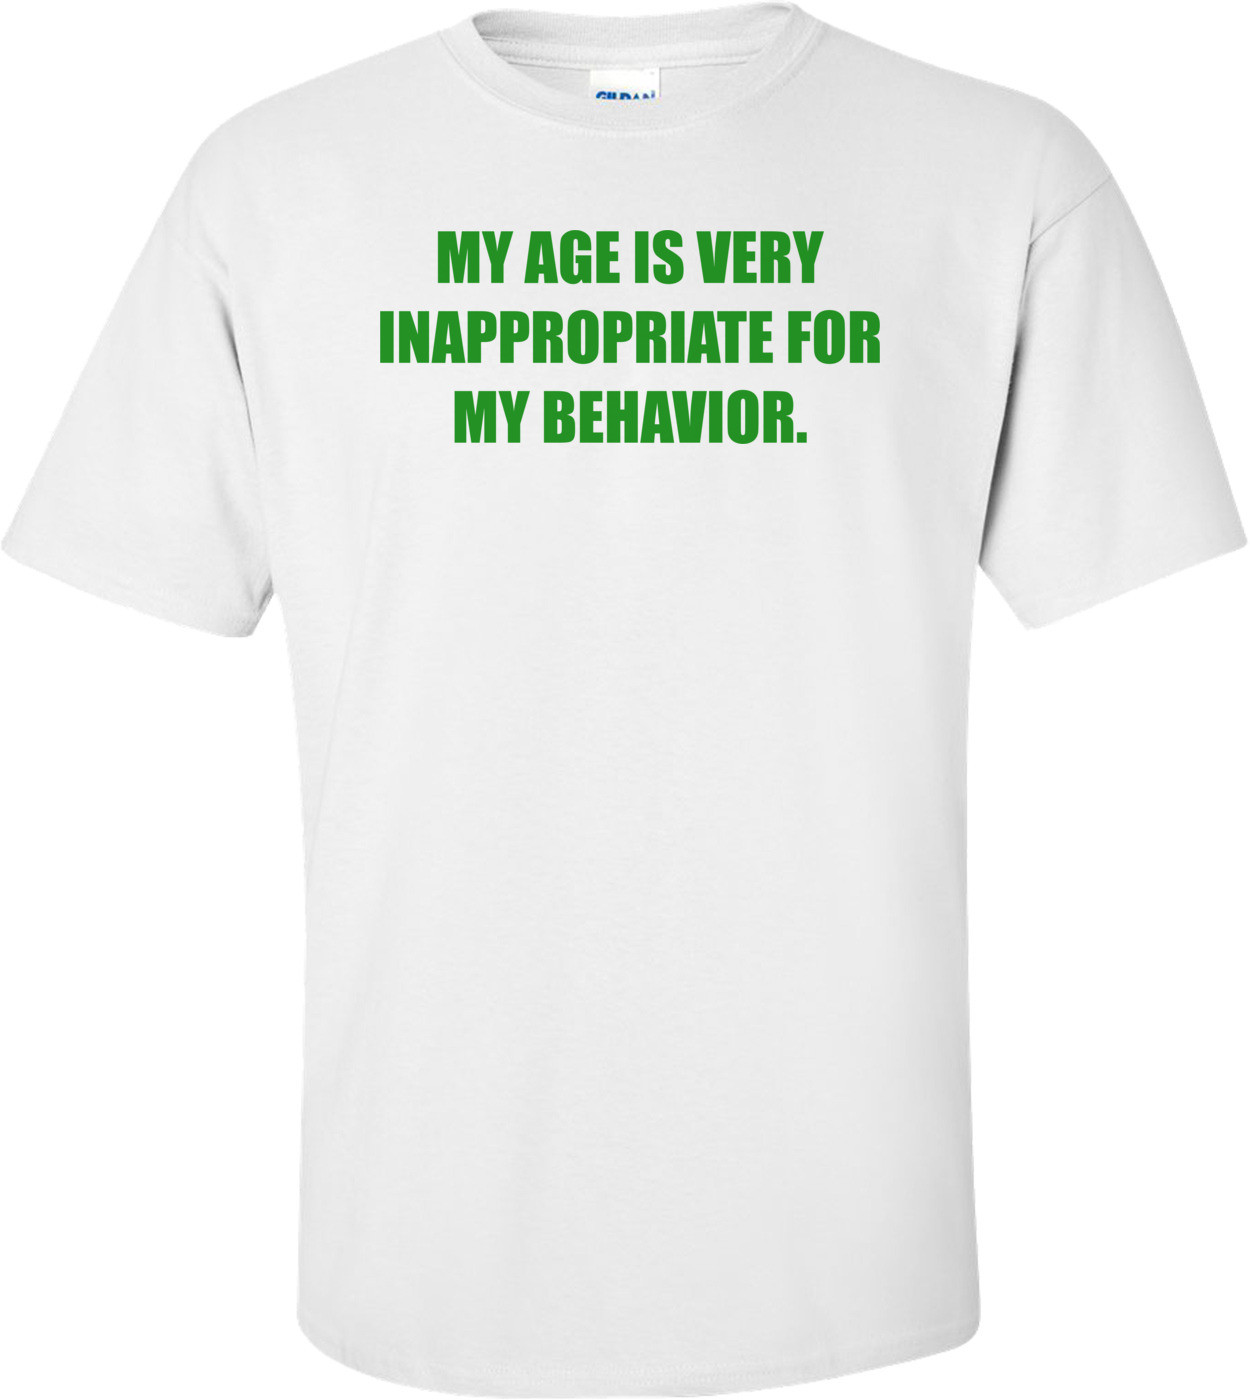 MY AGE IS VERY INAPPROPRIATE FOR MY BEHAVIOR. Shirt